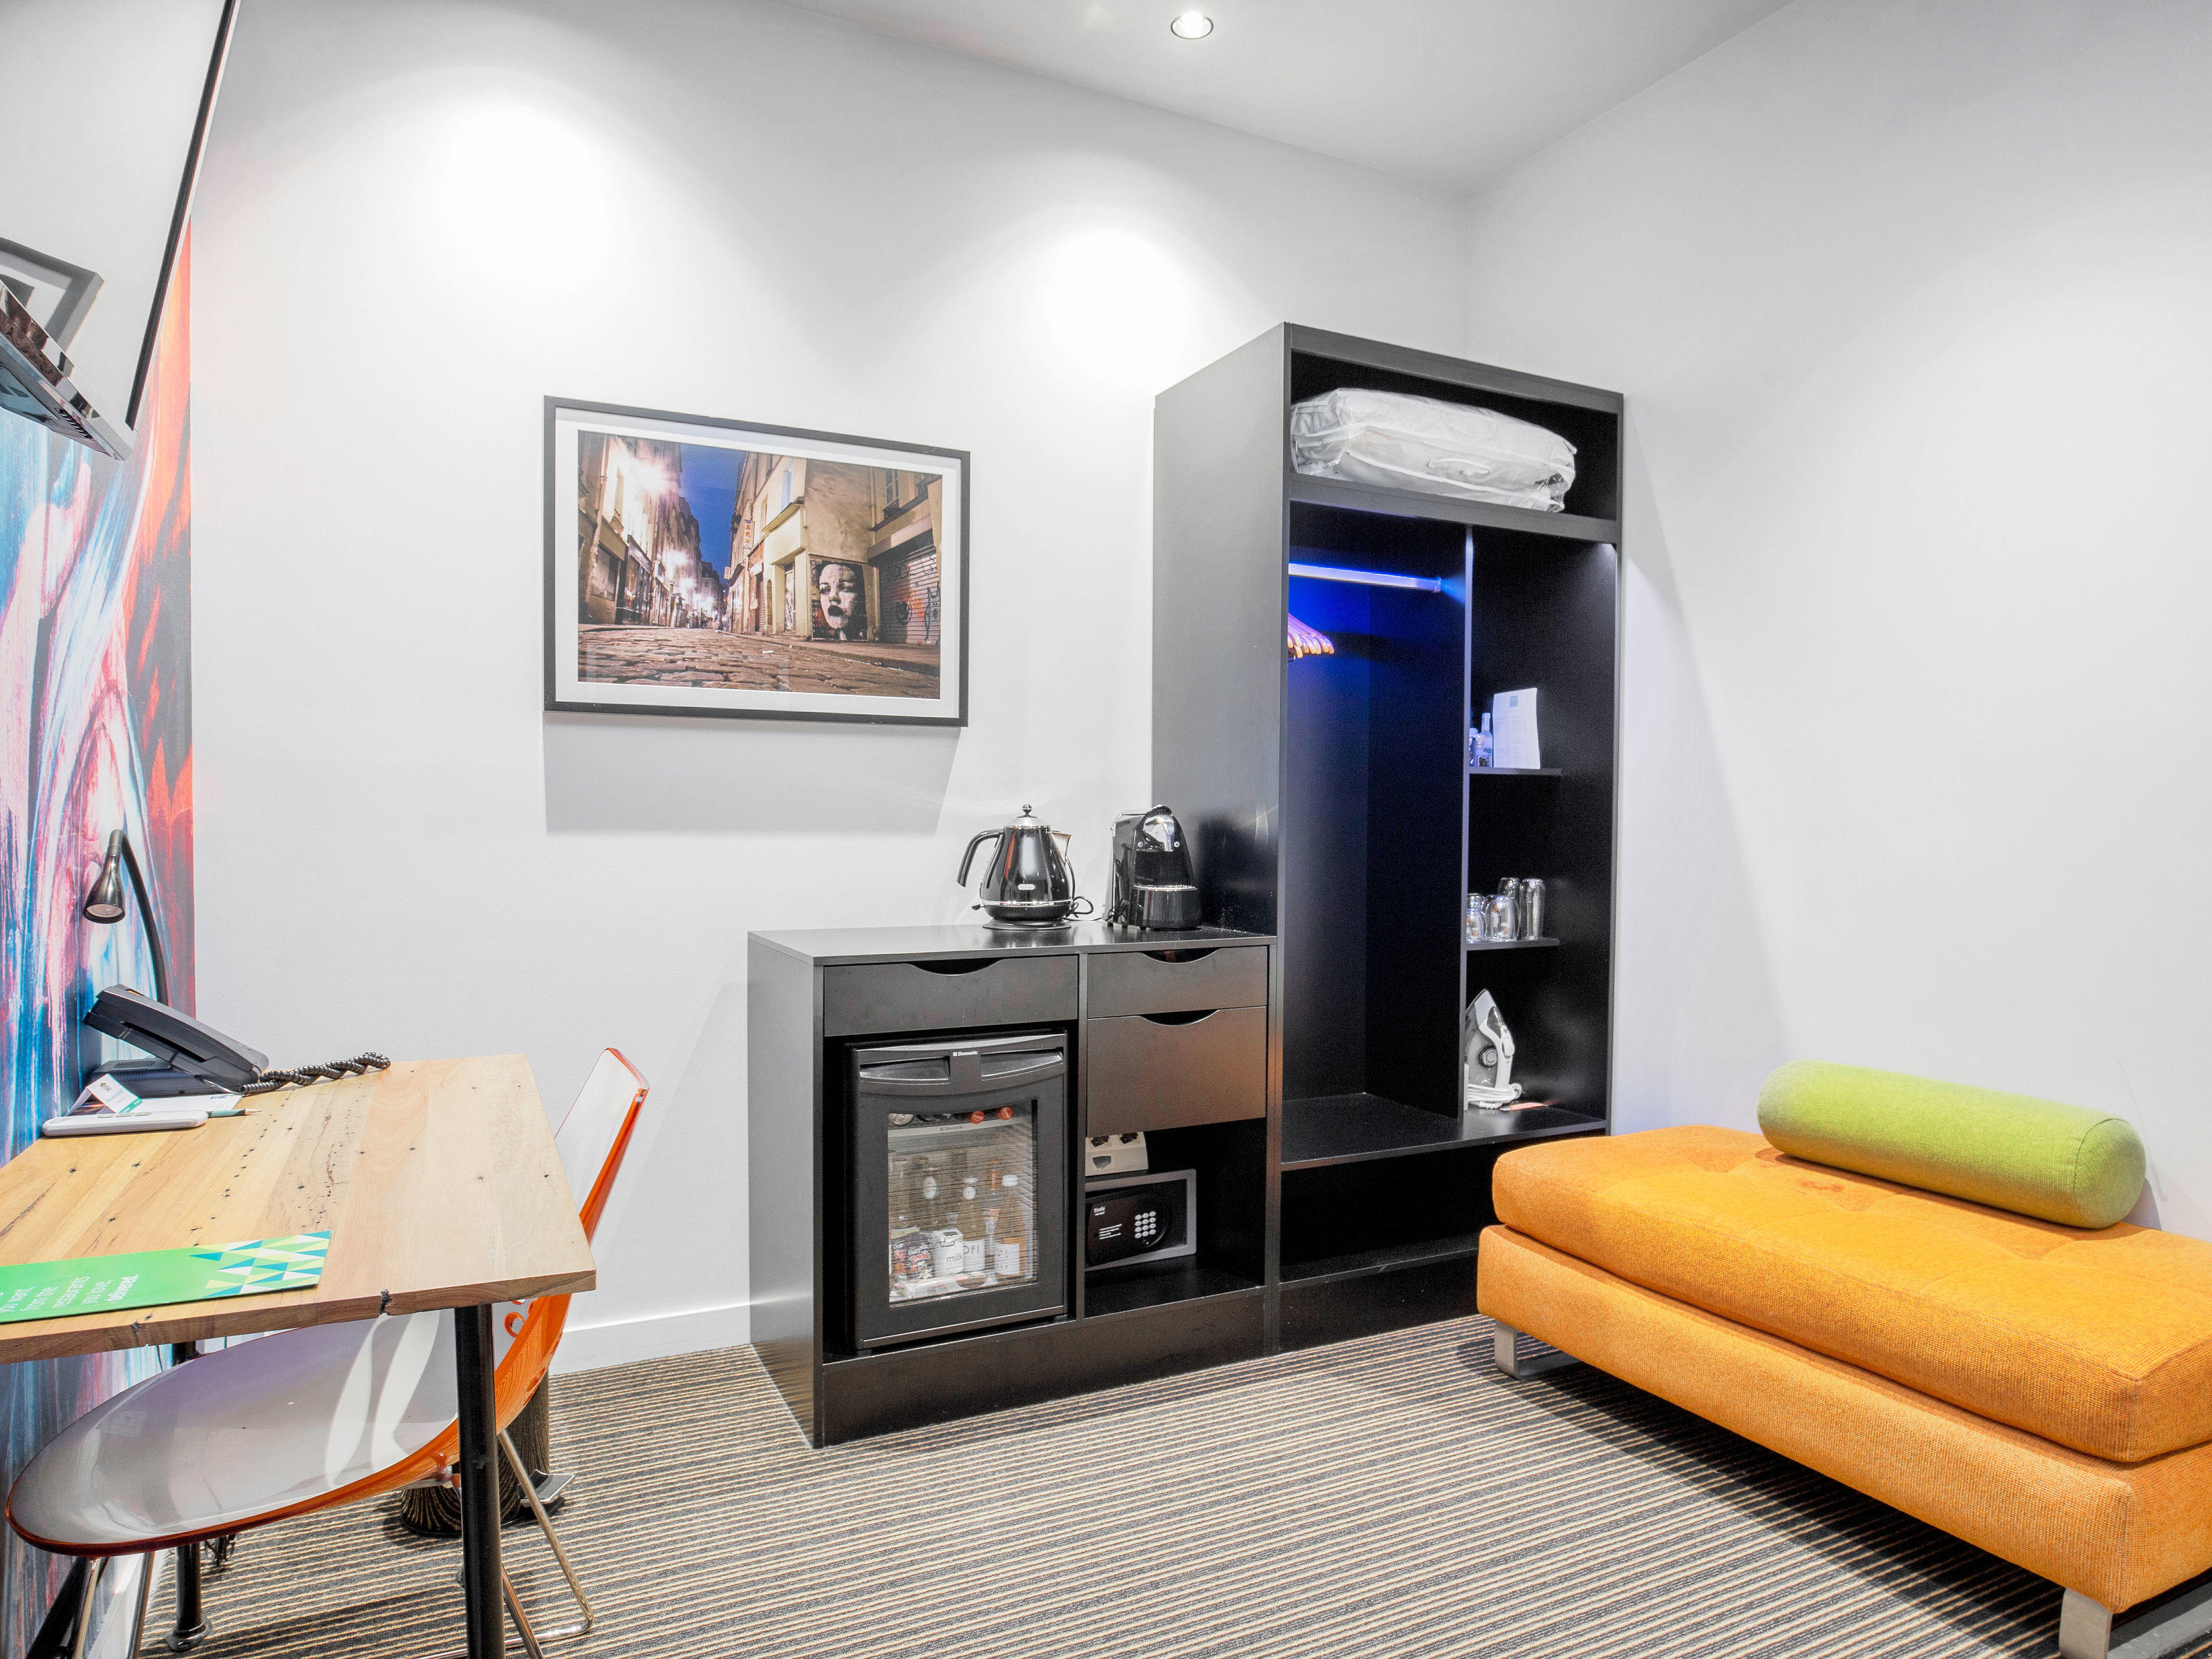 Specifically designed to accommodate accessibility needs - open plan